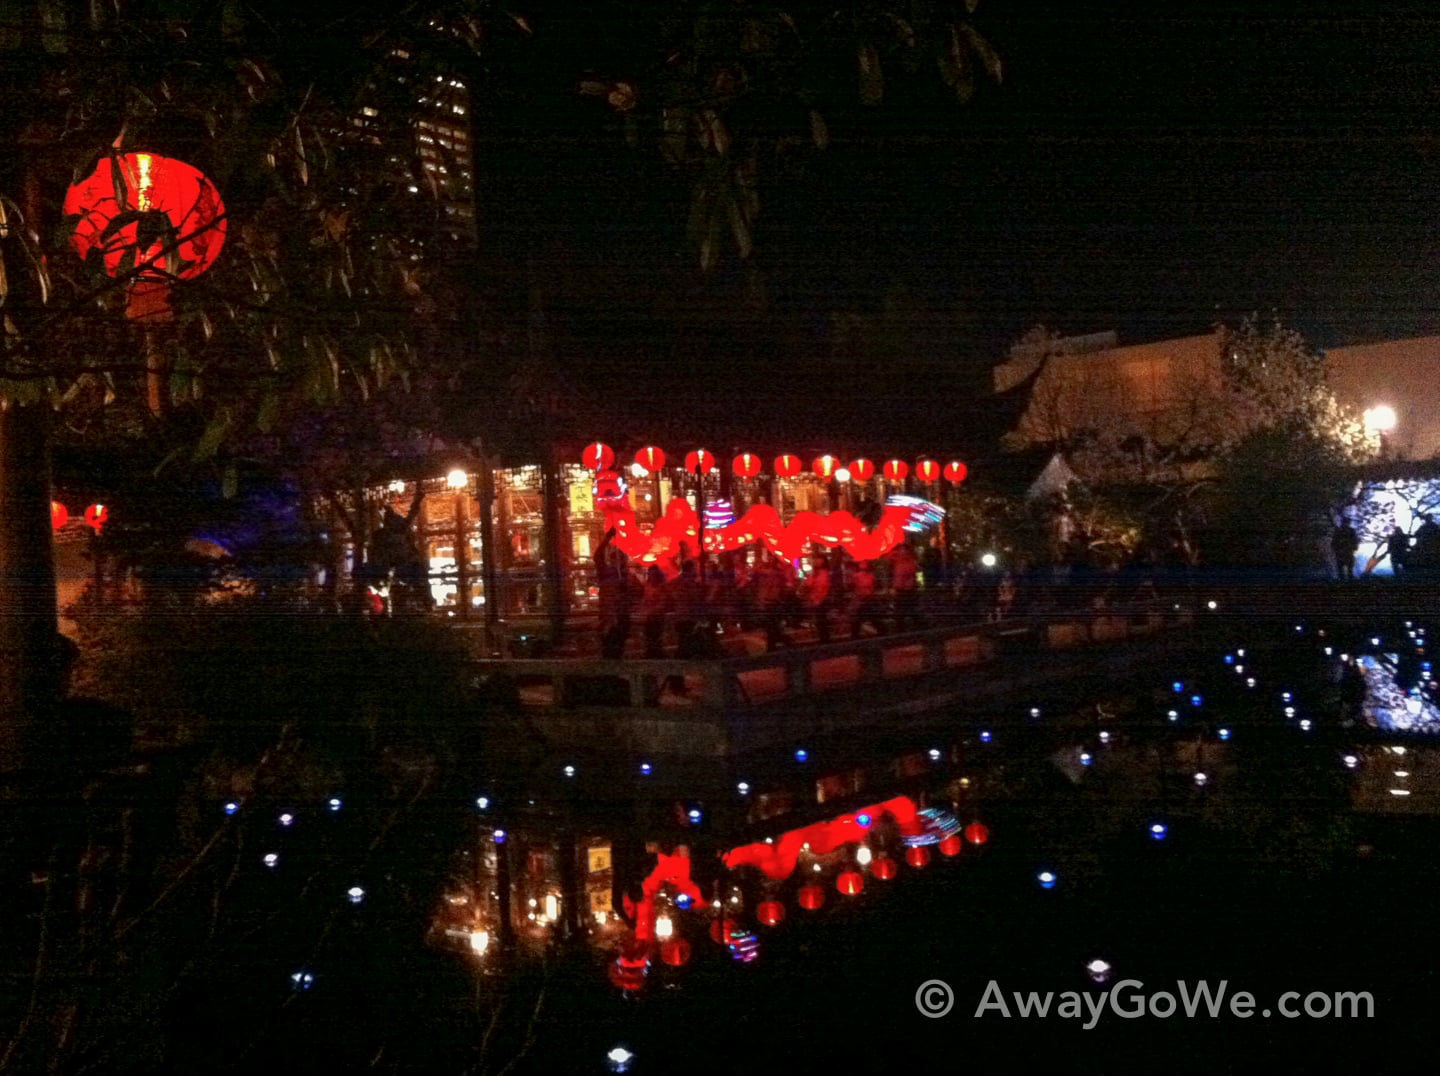 Lan Su Chinese Garden in Portland Oregon by night with red lanterns